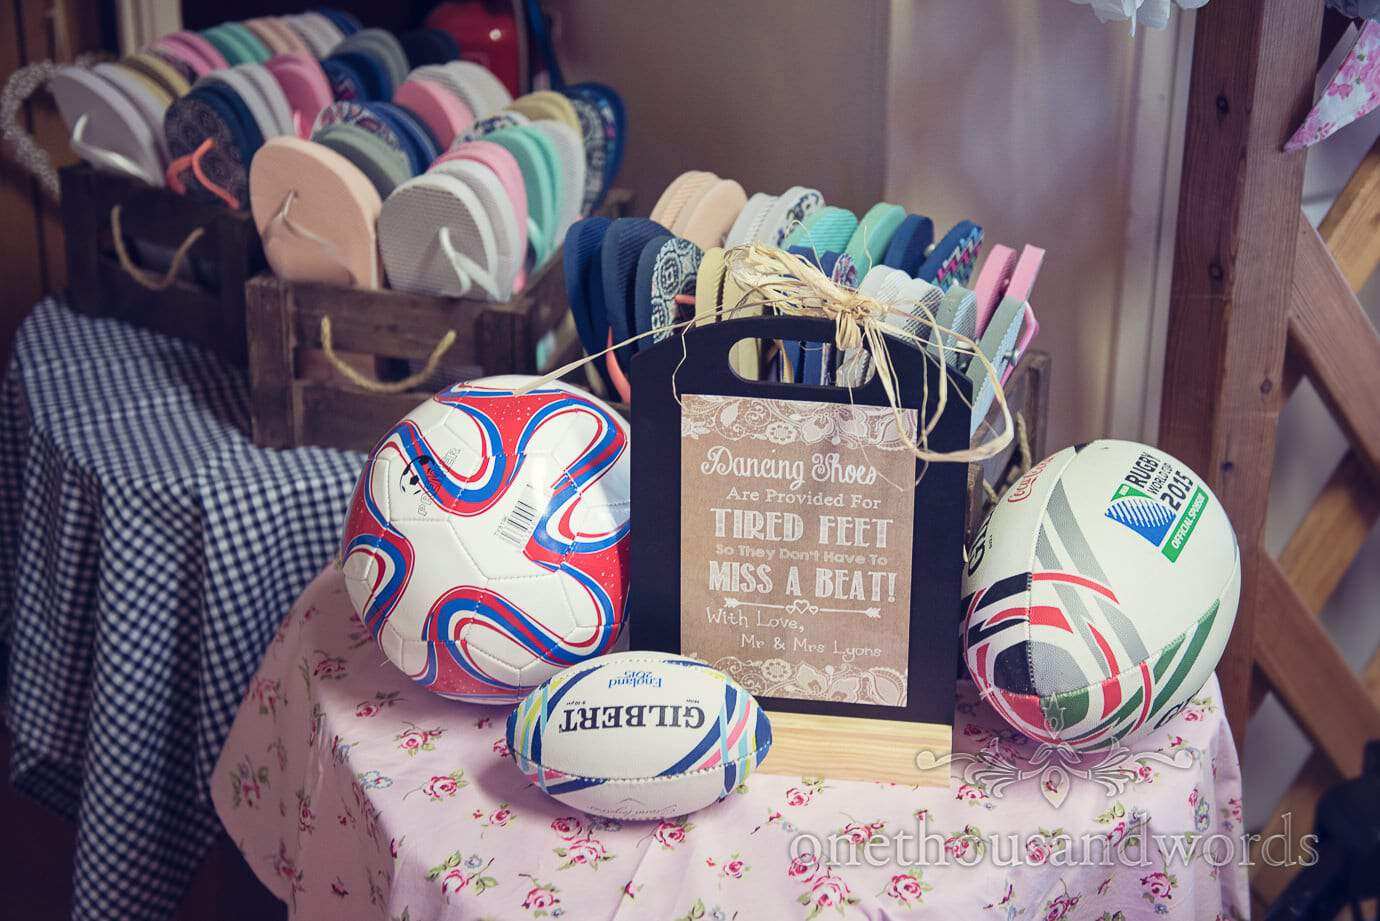 Wedding flip flops for dancing with Dancing shoes sign and balls